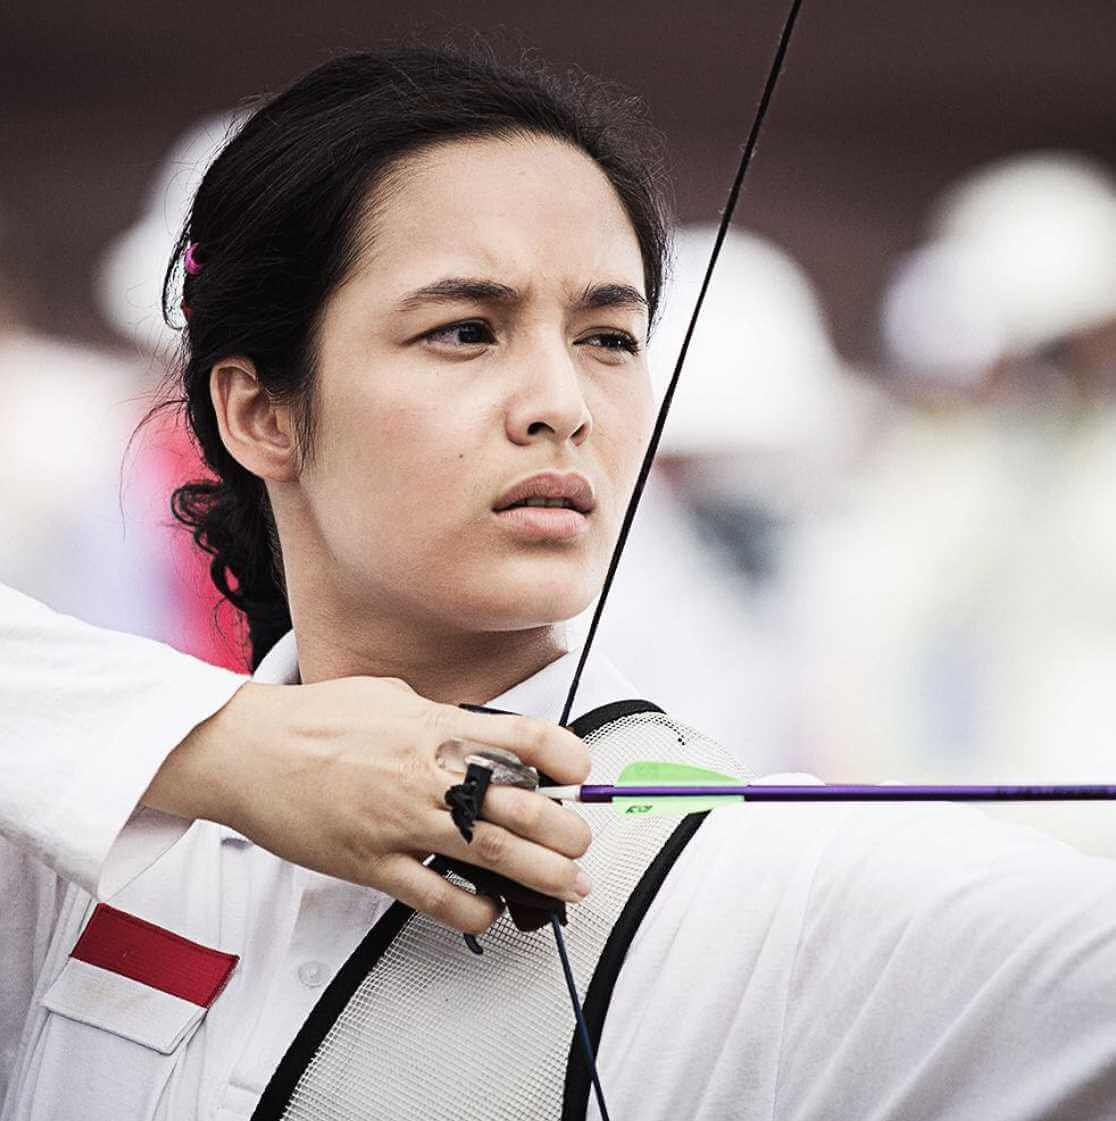 Chelsea Islan with Sports Photo